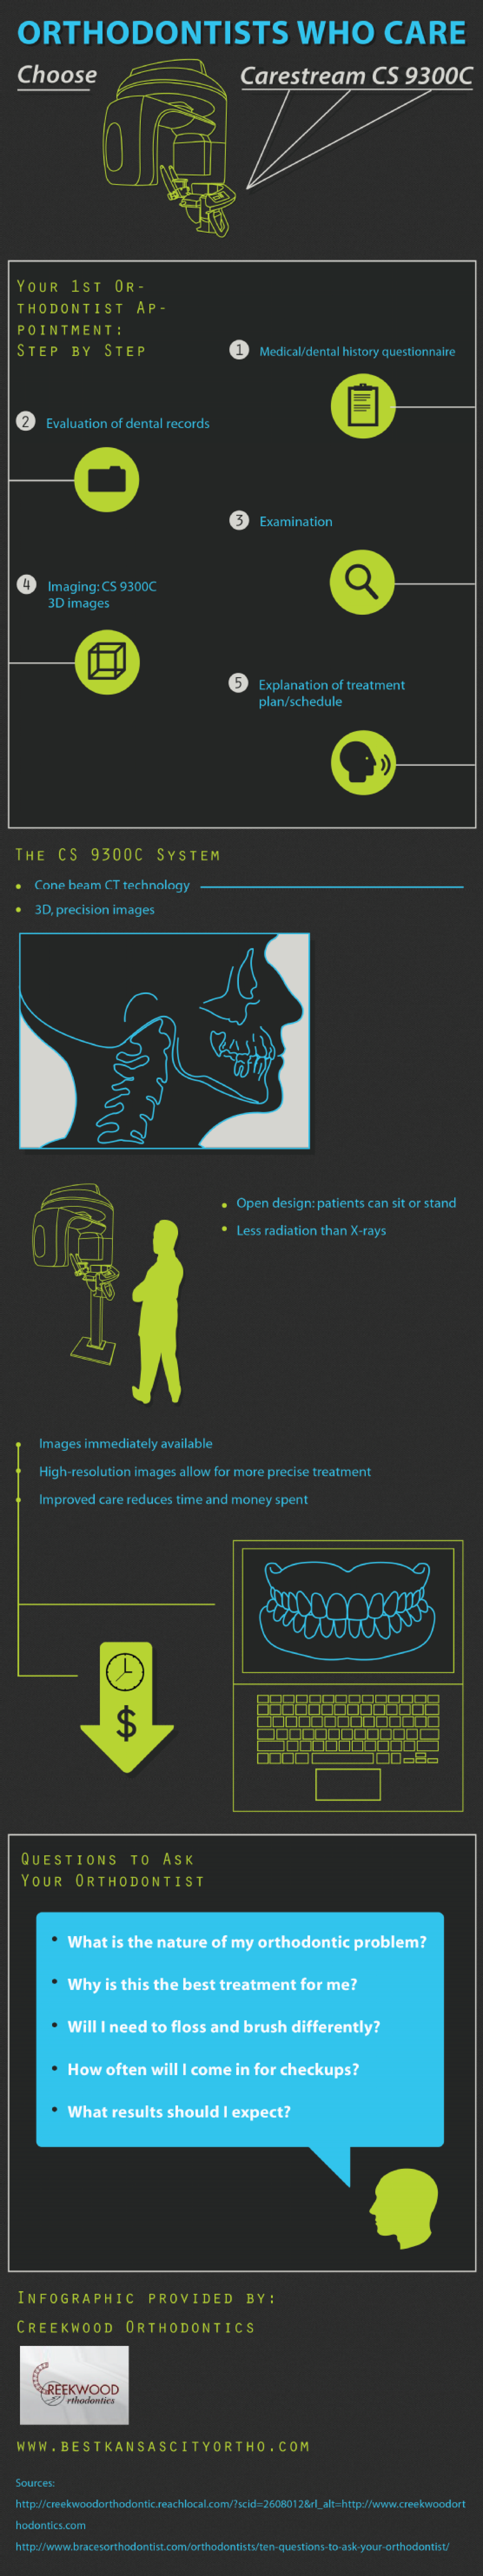 Orthodontists Who Care Choose Carestream CS 9300C  Infographic